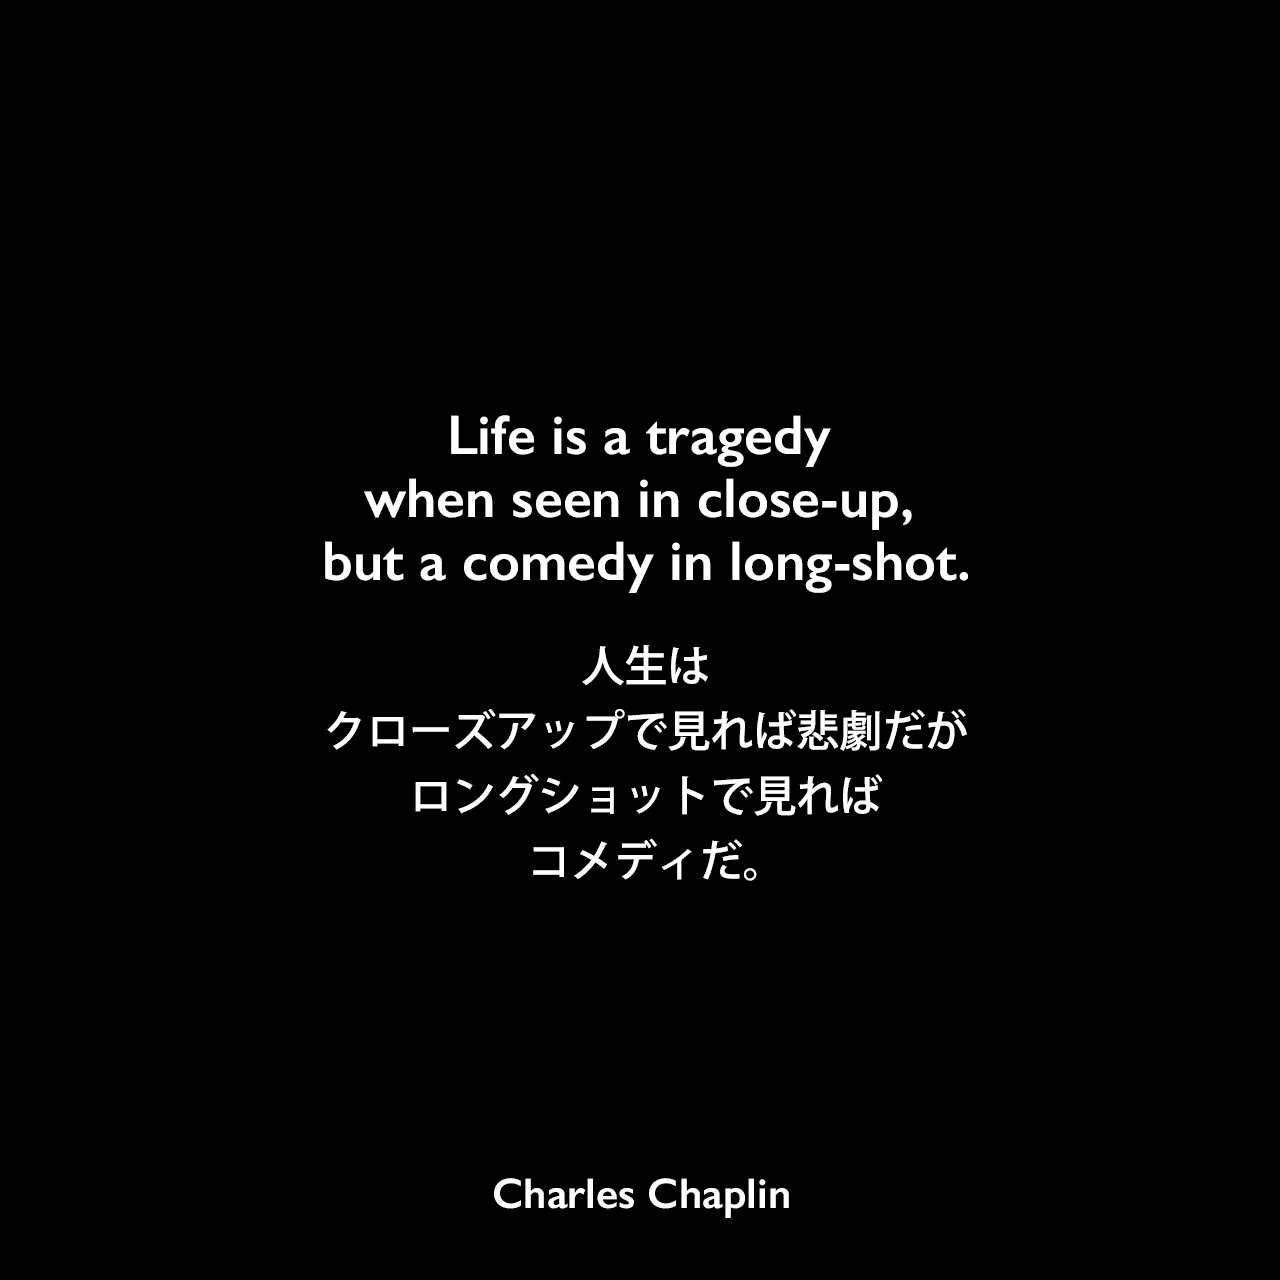 Life is a tragedy when seen in close-up, but a comedy in long-shot.人生はクローズアップで見れば悲劇だが、ロングショットで見ればコメディだ。